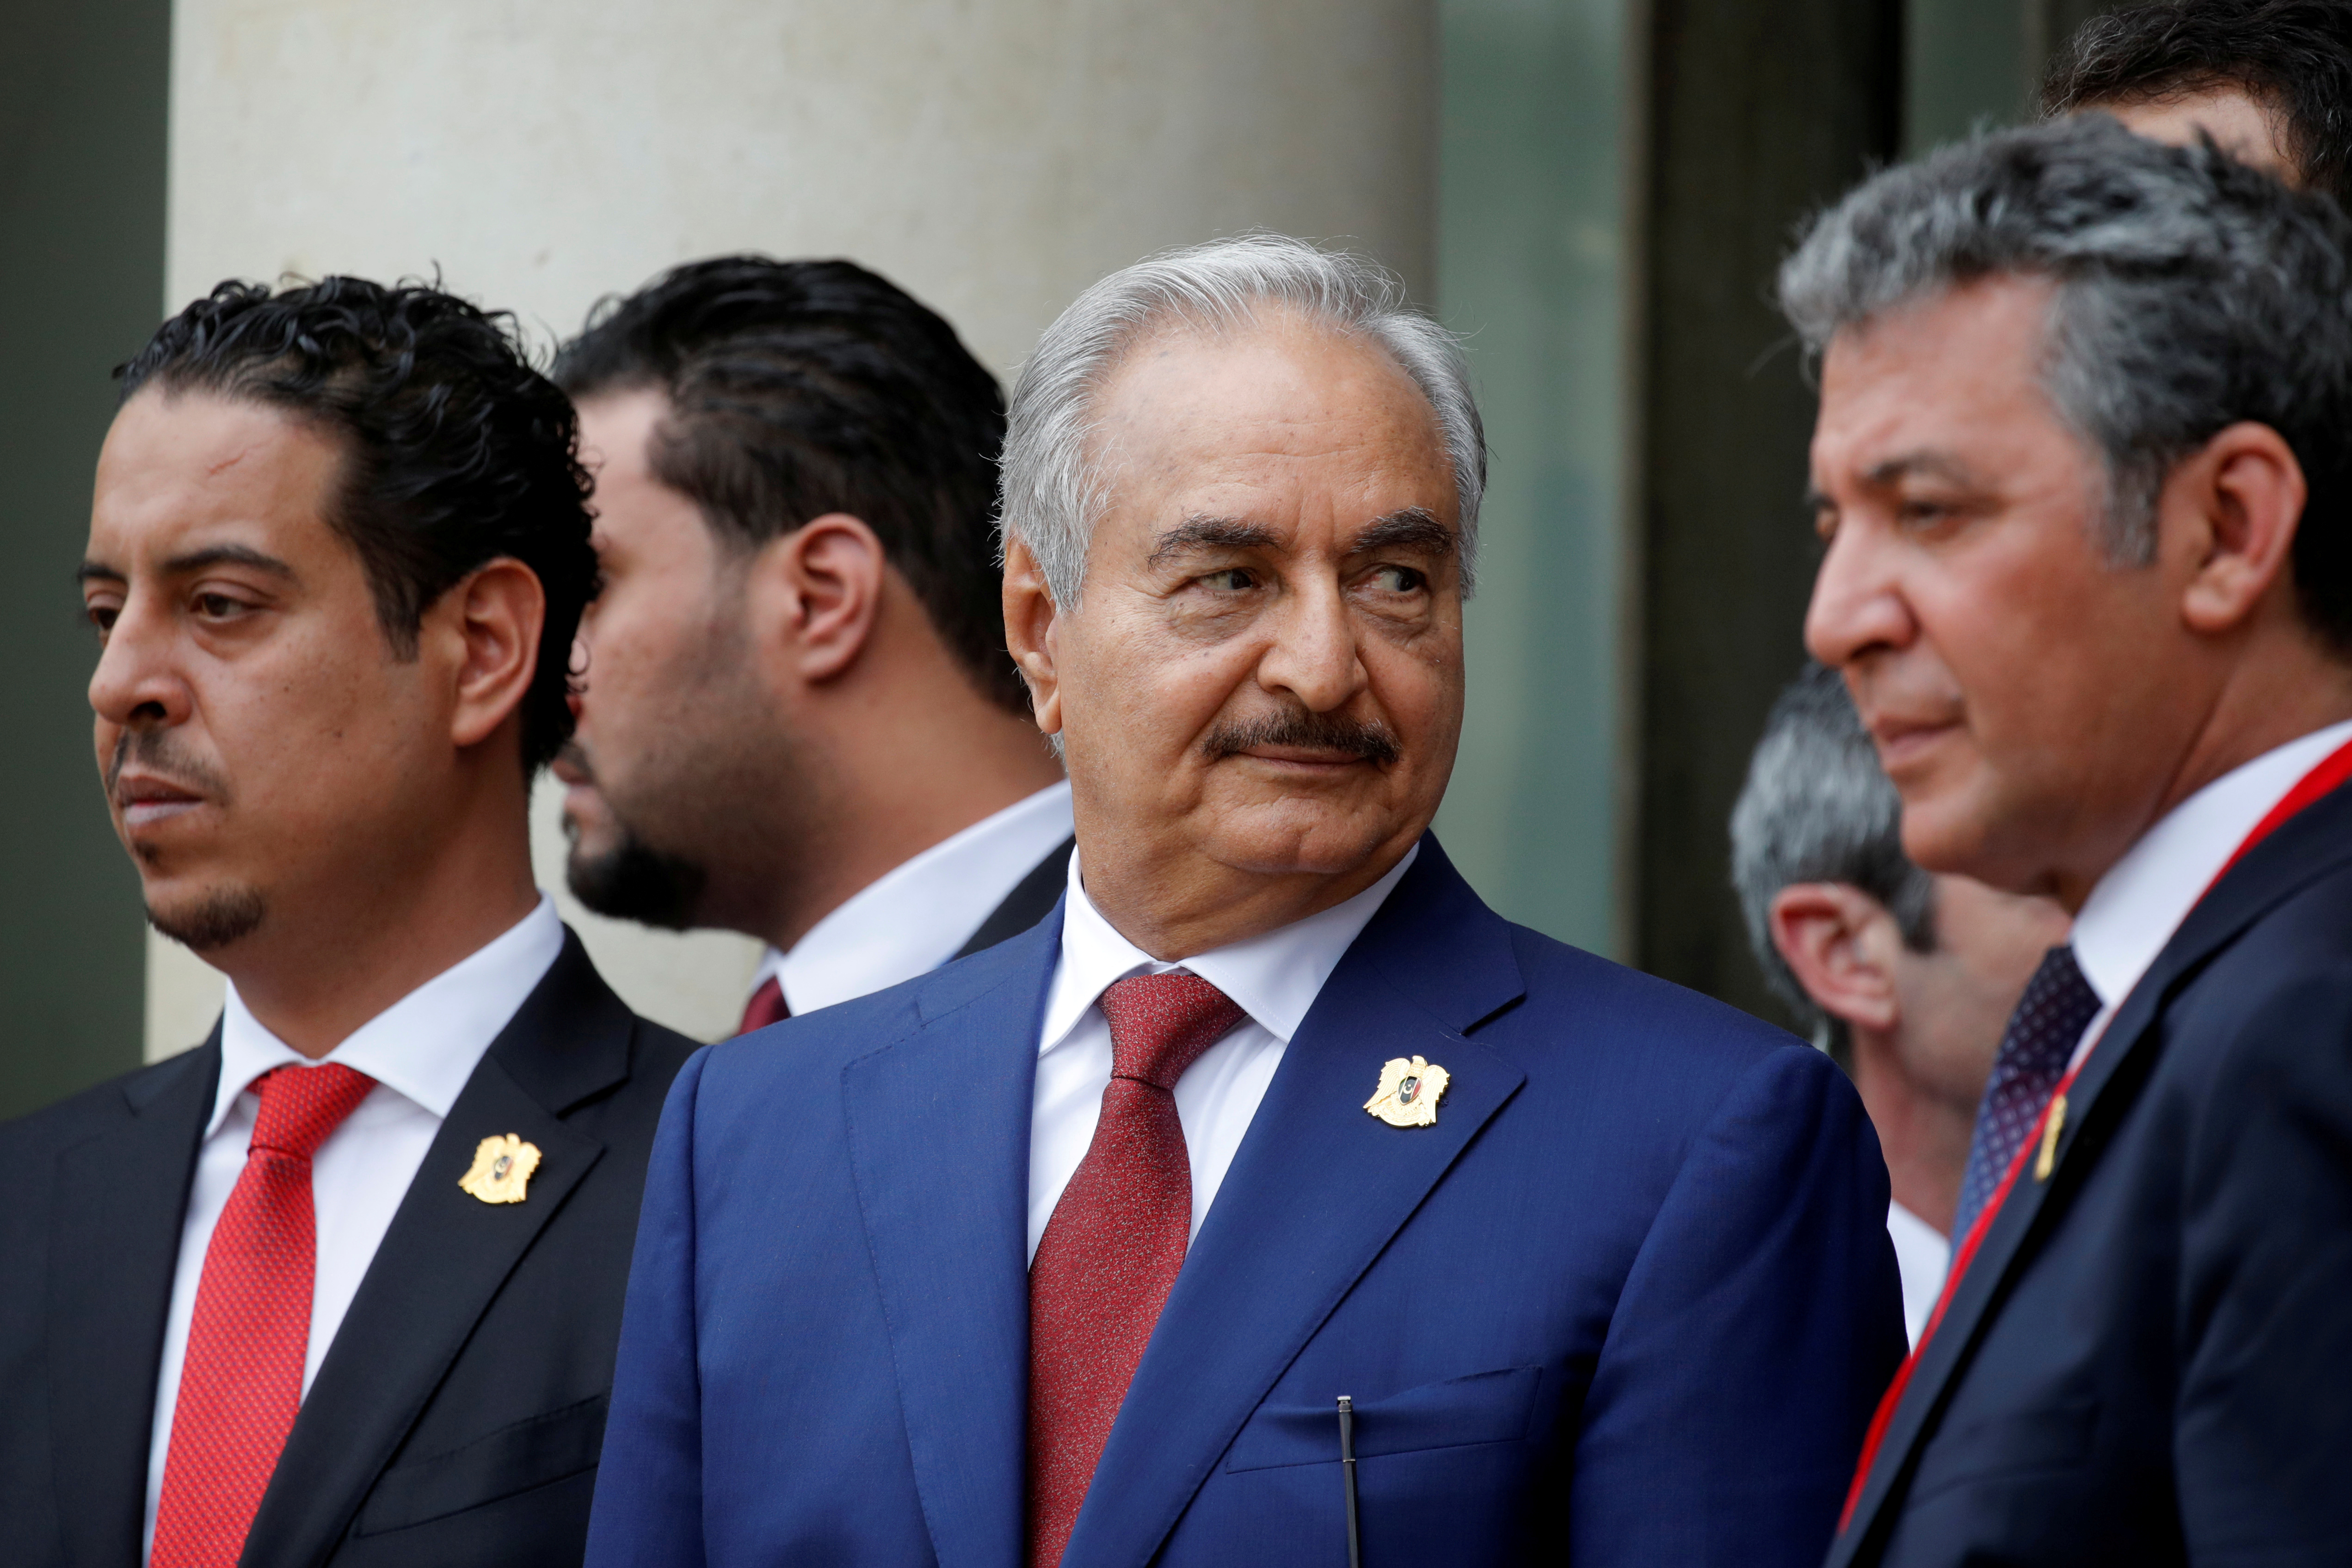 FILE - Khalifa Haftar (C), the military commander who dominates eastern Libya, leaves after an international conference on Libya in Paris, France, May 29, 2018.